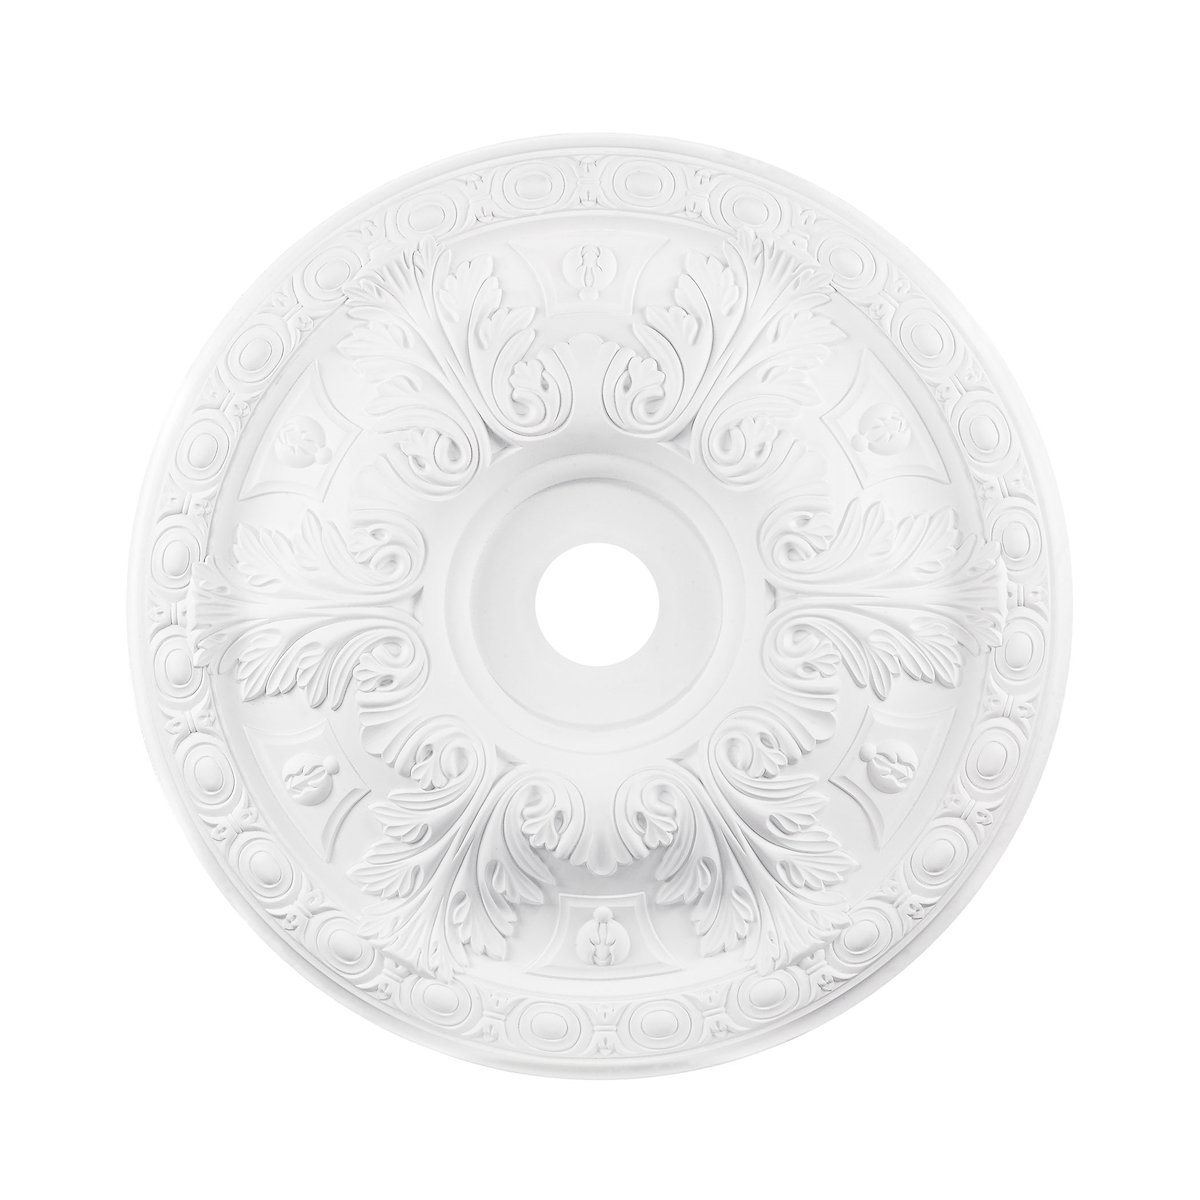 ELK Lighting M1019WH Decorative-Ceiling-Medallions, 28''L x 28''W x 3''H, White